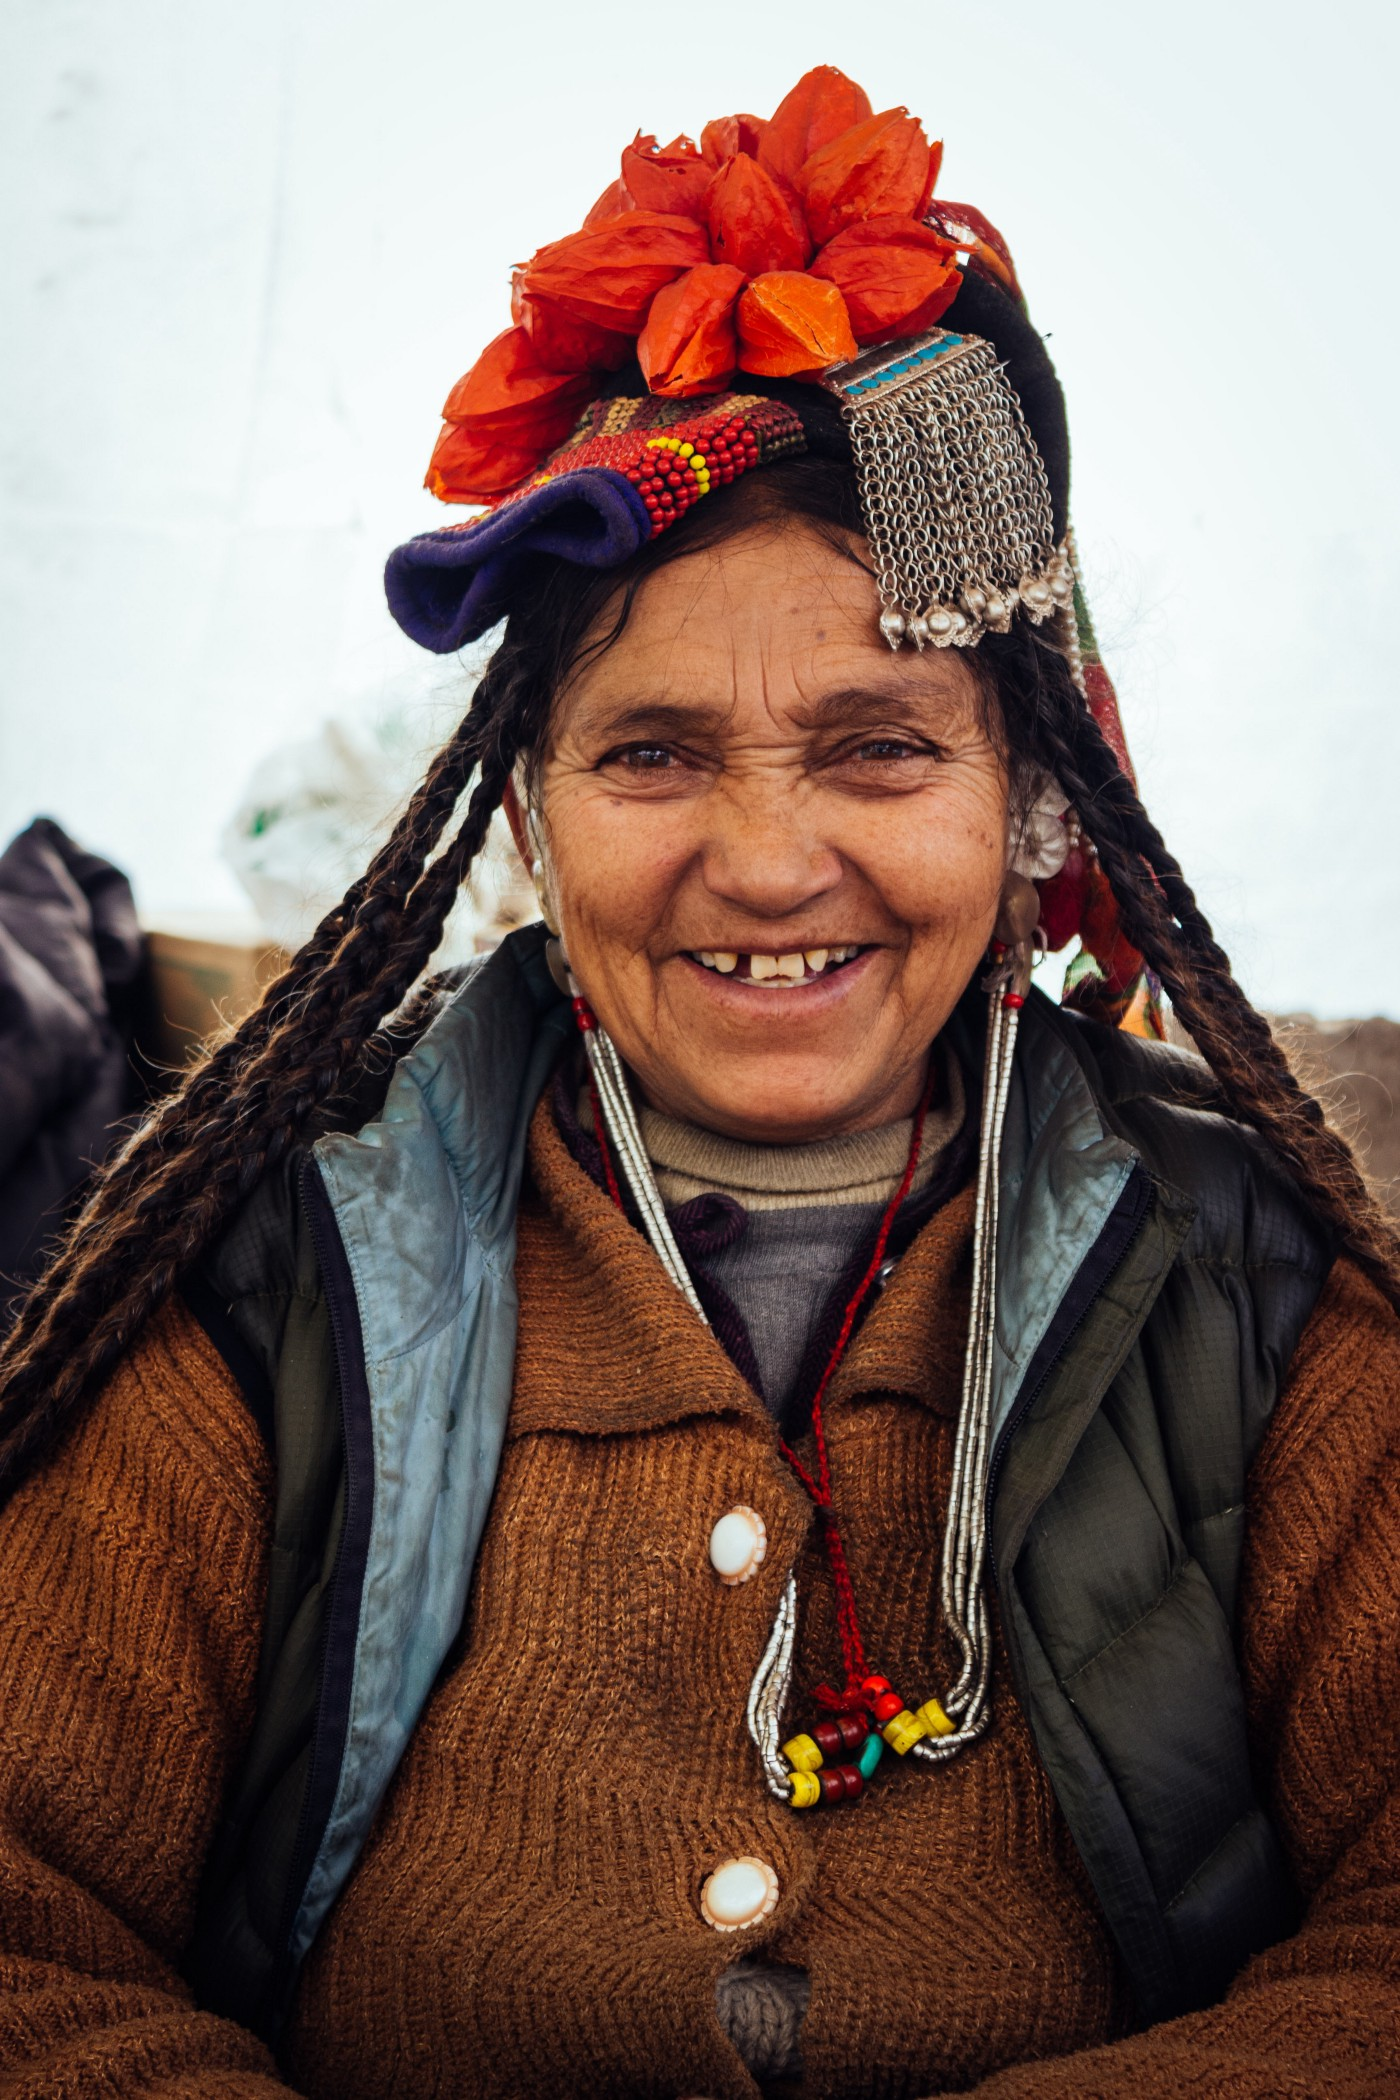 An old woman wearing a traditional dress and smiling.